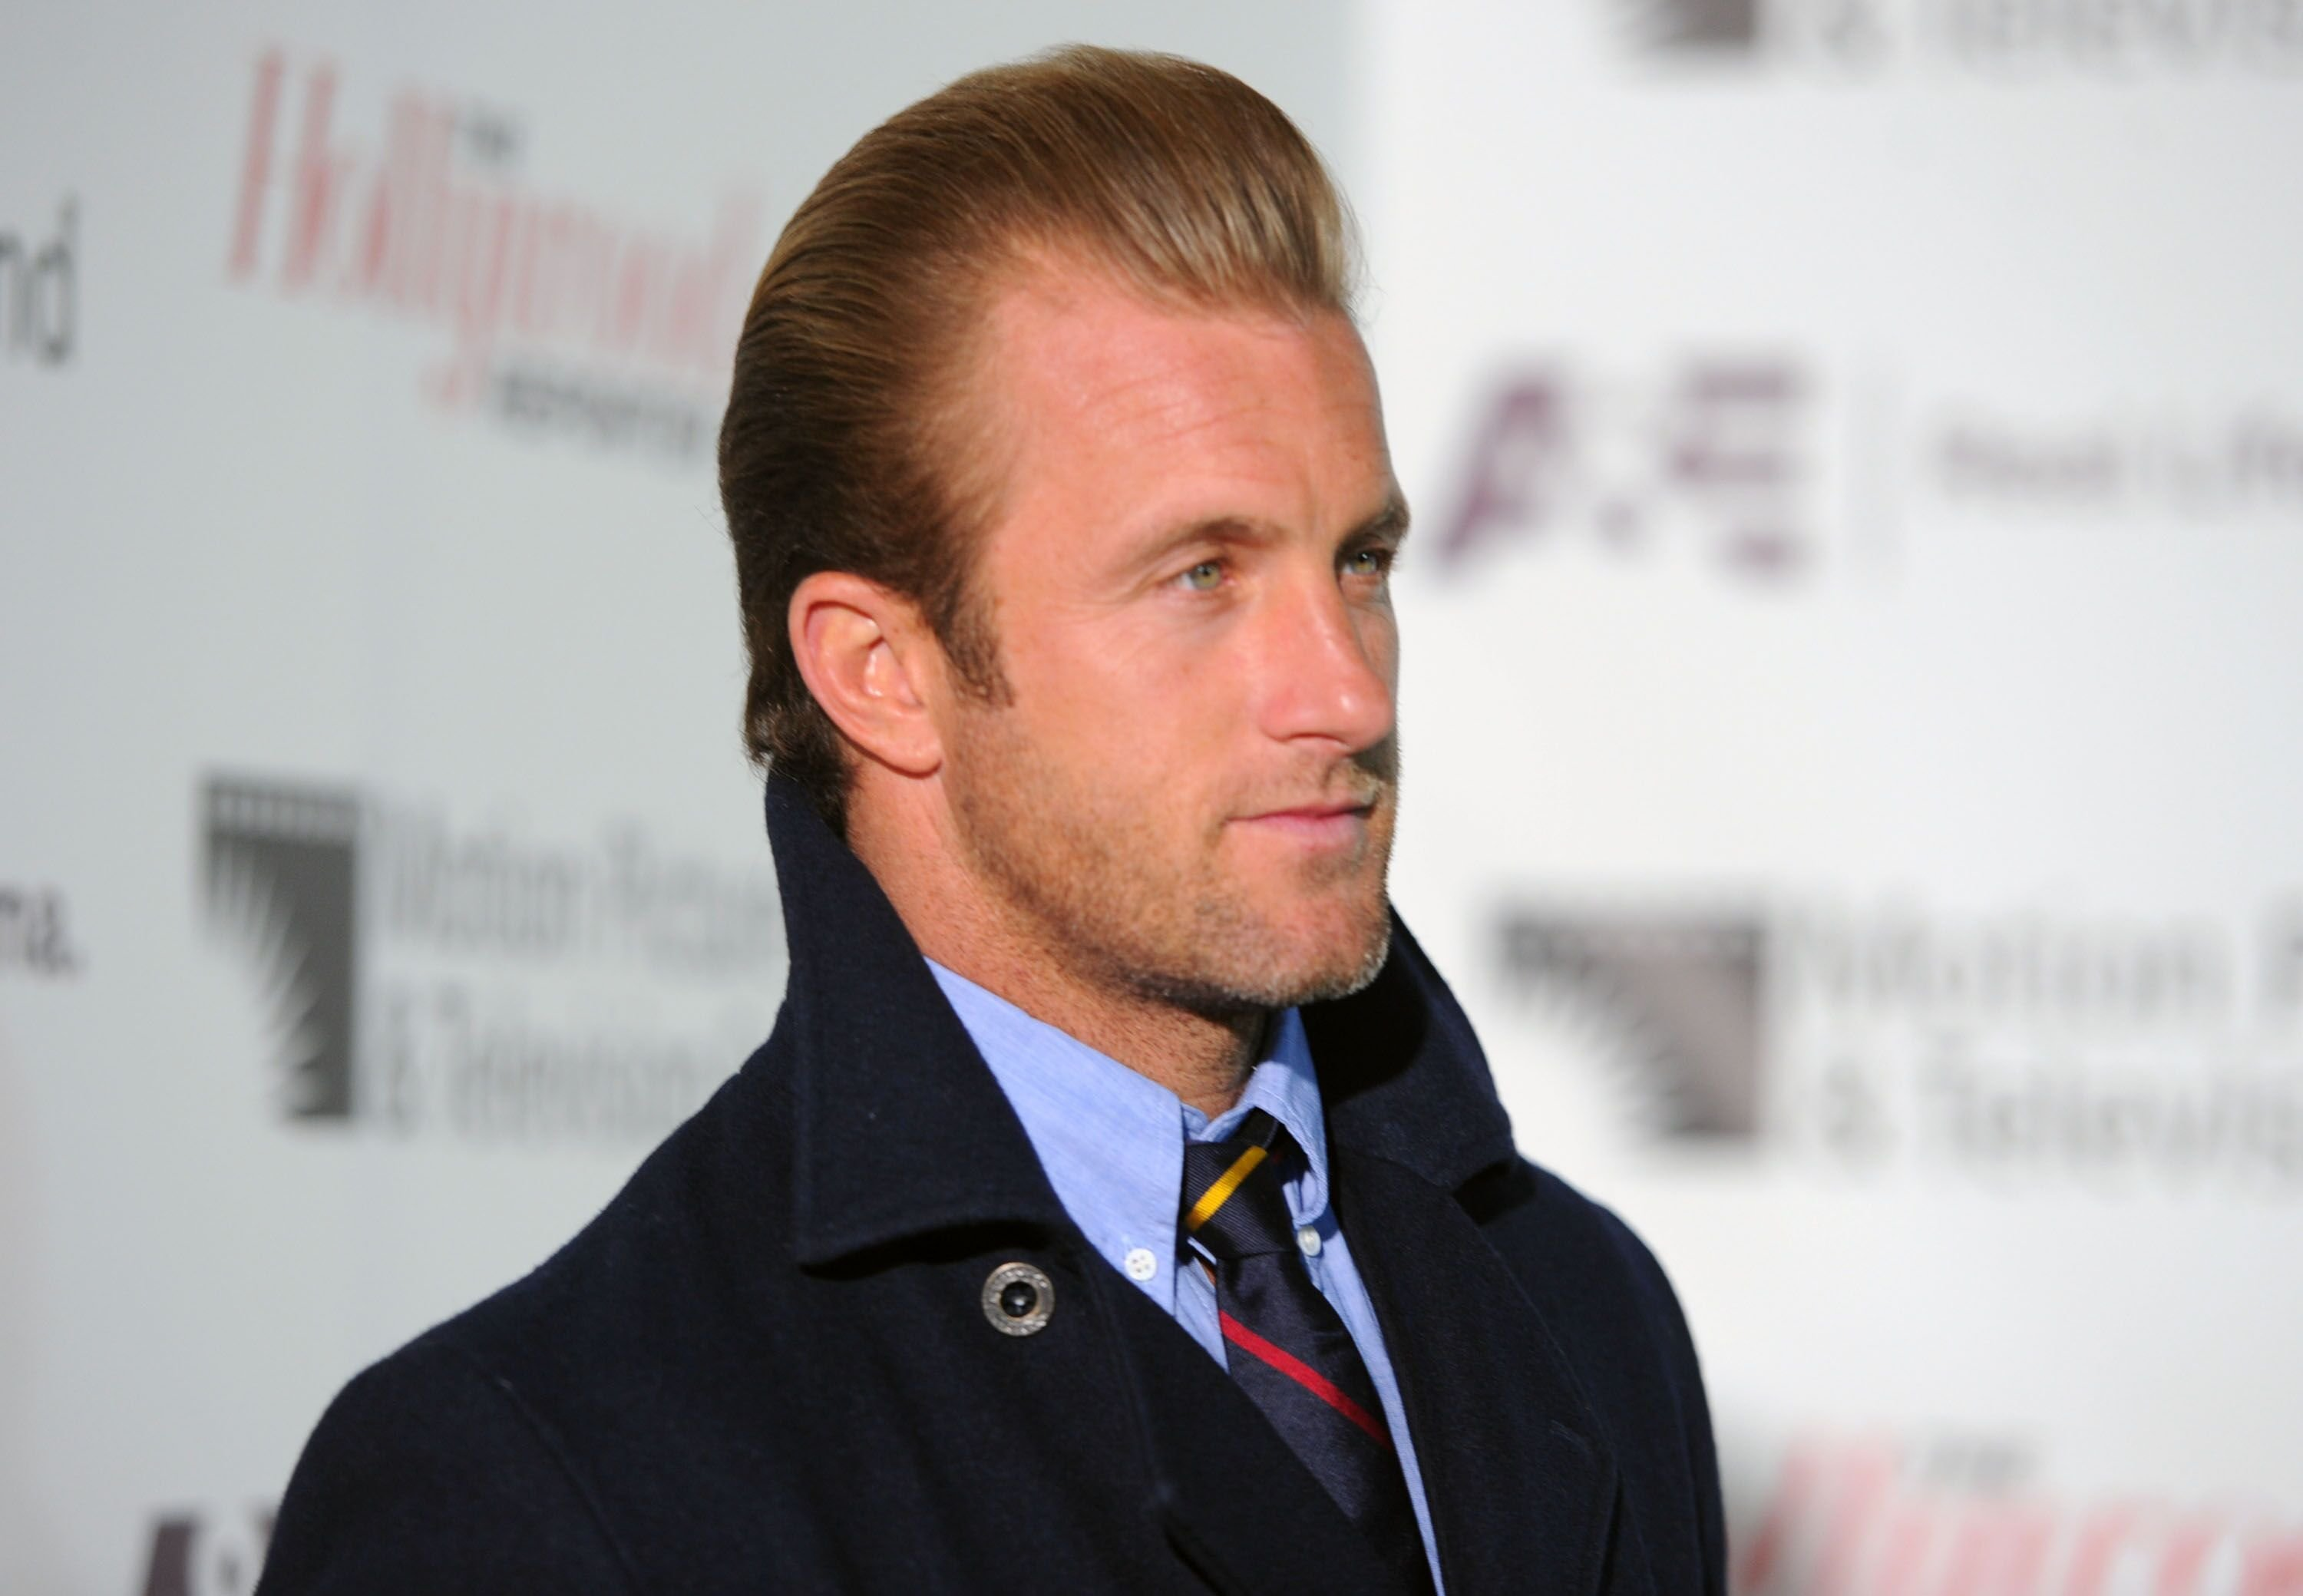 Scott Caan arrives at The Hollywood Reporter's Annual Next Generation Reception held at Milk Studios on November 5, 2011 in Los Angeles, California. | Source: Getty Images